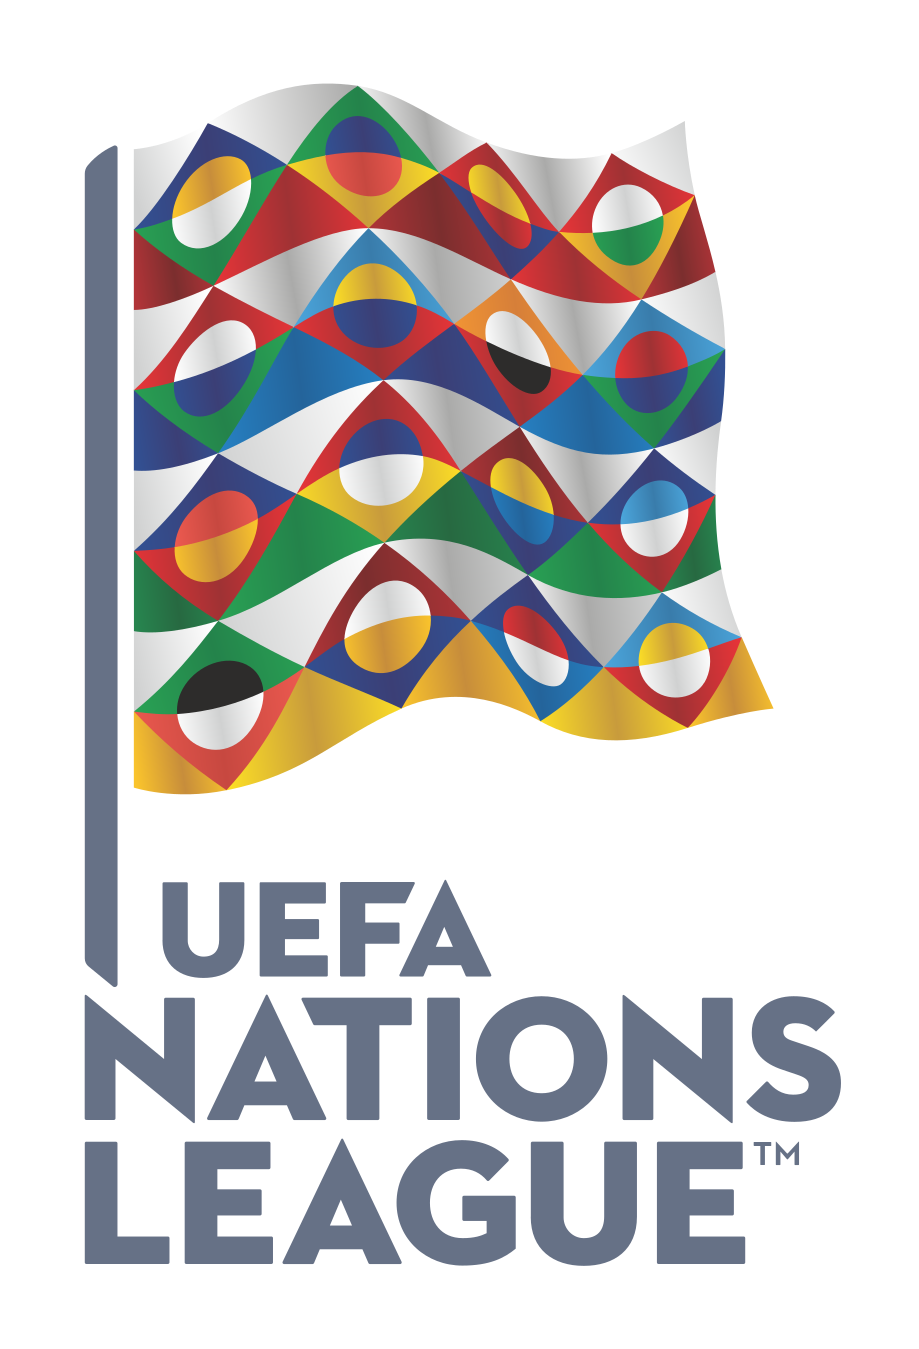 [PRONOSTICI] 3ª e 4ª Giornata | UEFA Nations League Logo210